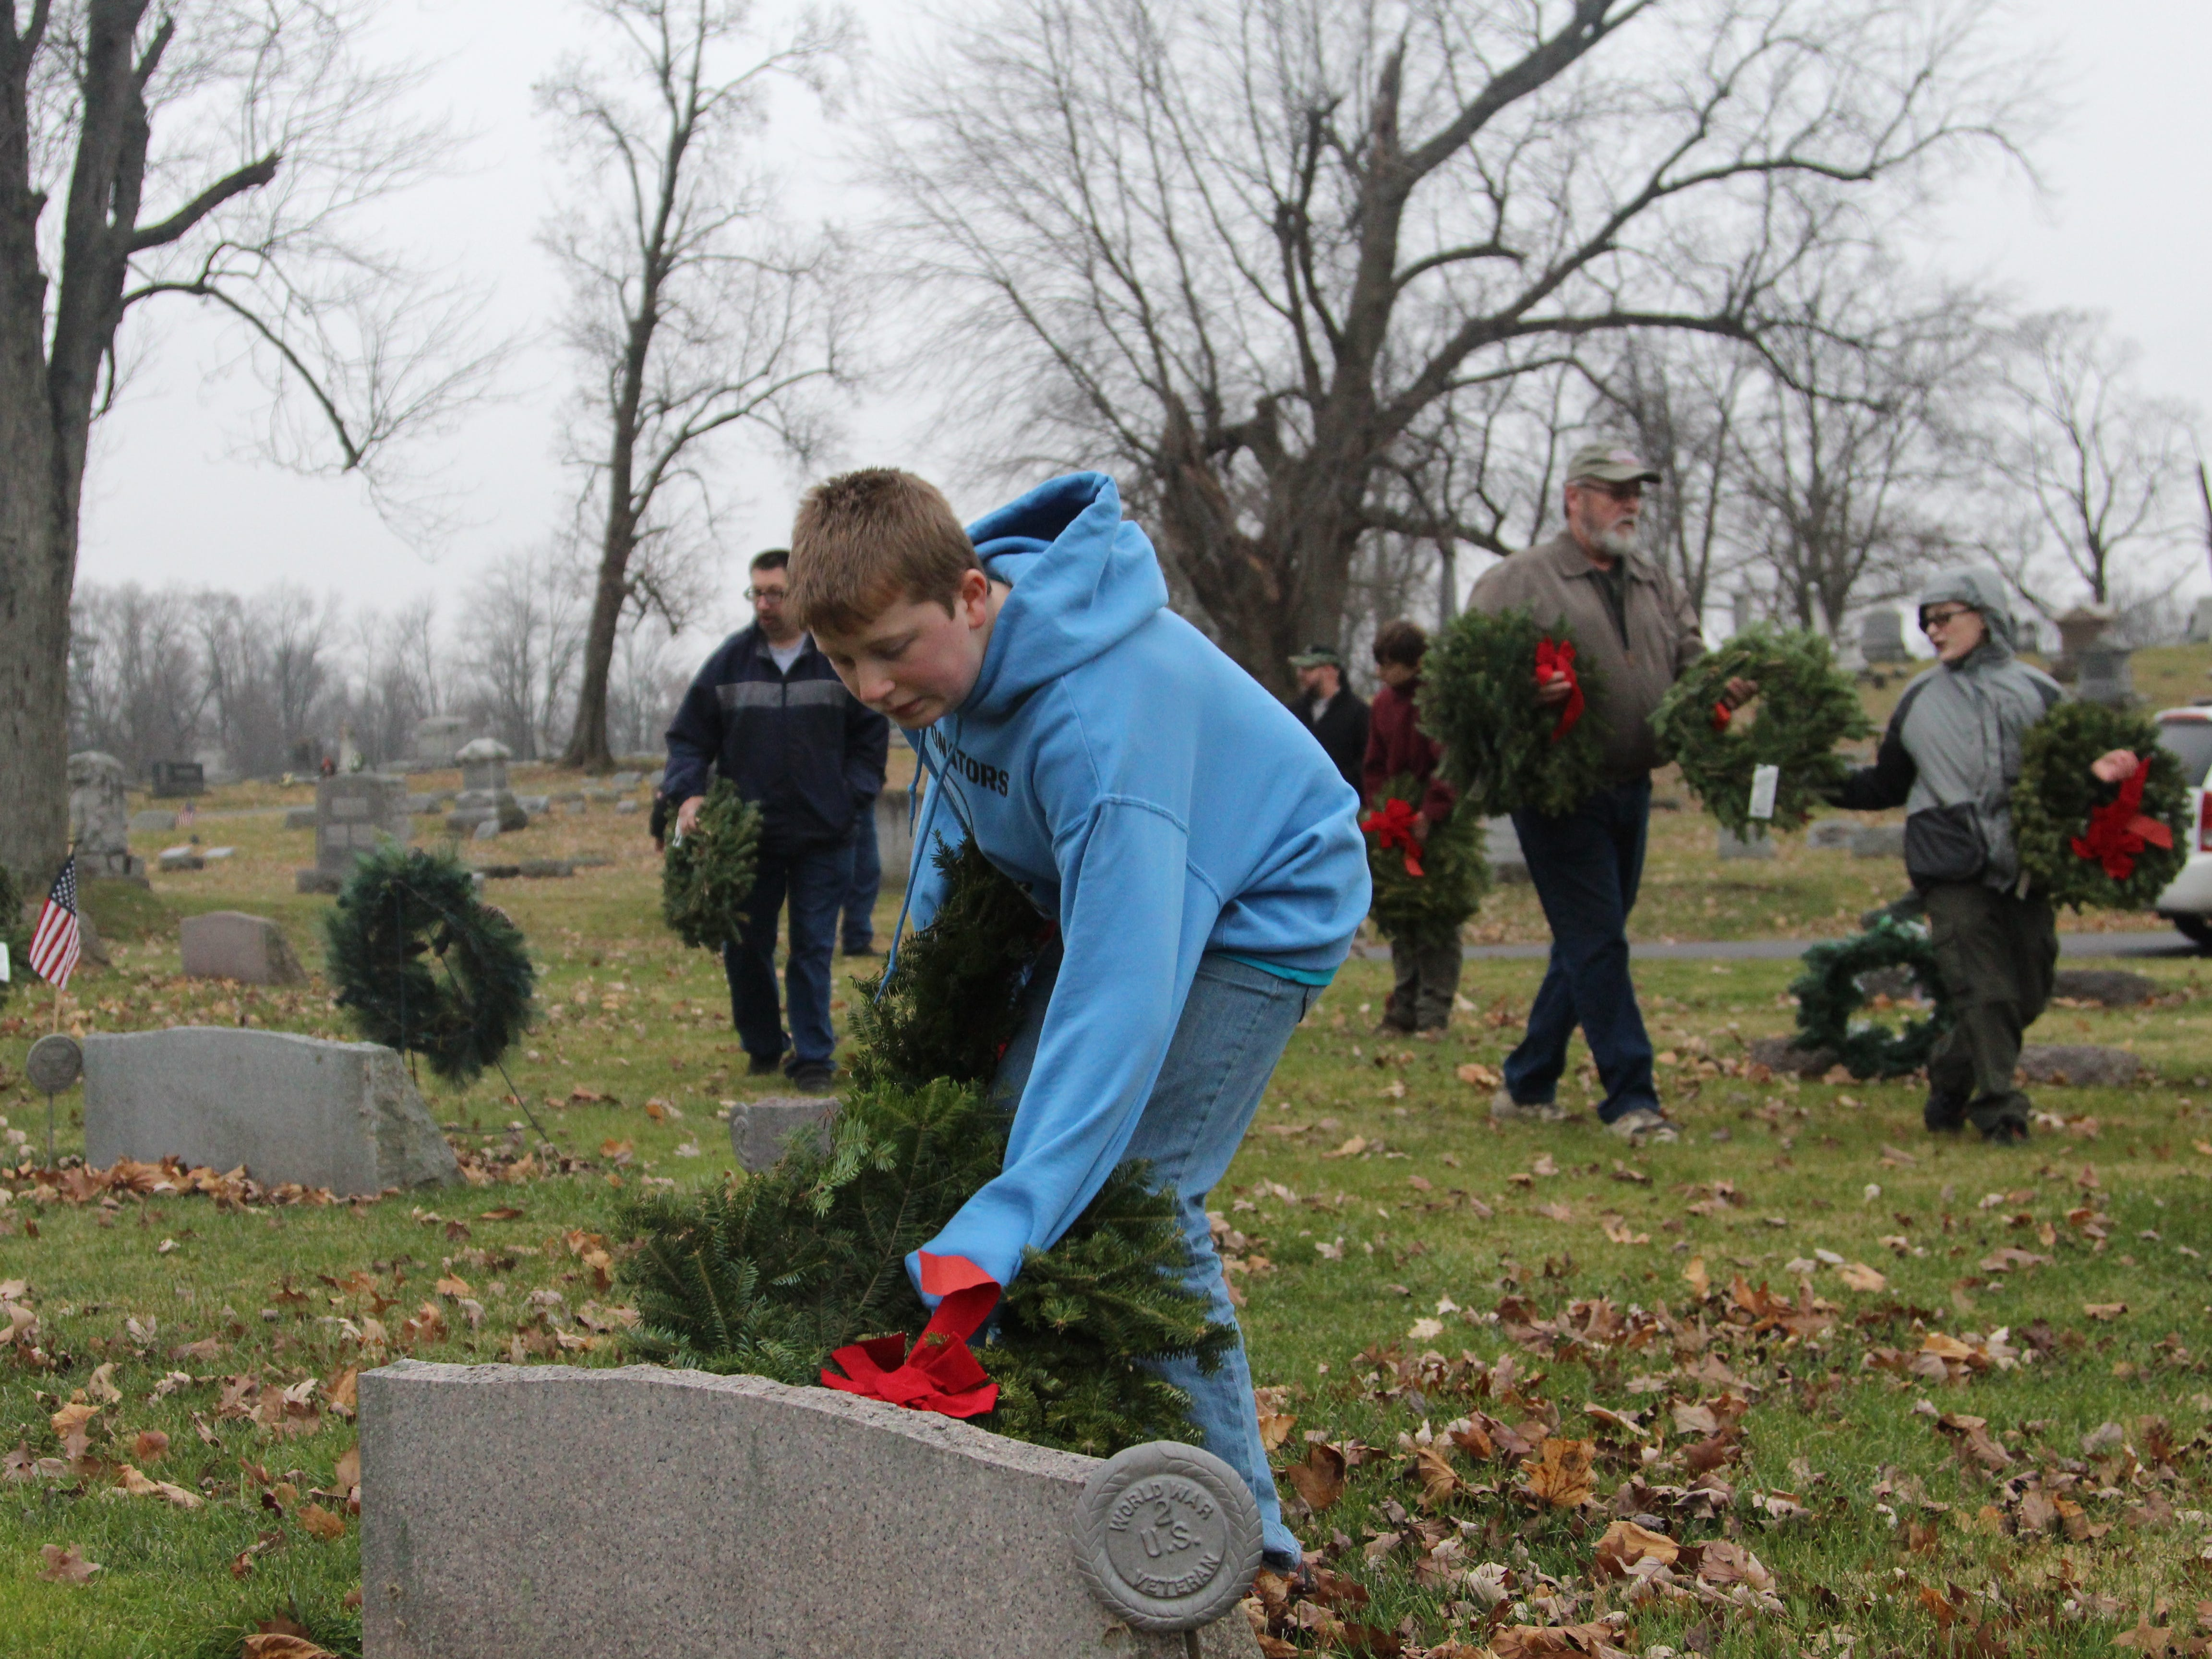 Aaron French, 12, places a wreath on the grave of a World War II veteran at Marion Cemetery. He was among the volunteers to place the donated wreaths in honor of veterans Saturday during Wreaths Across America, a nationwide effort to honor veterans during the holiday season.